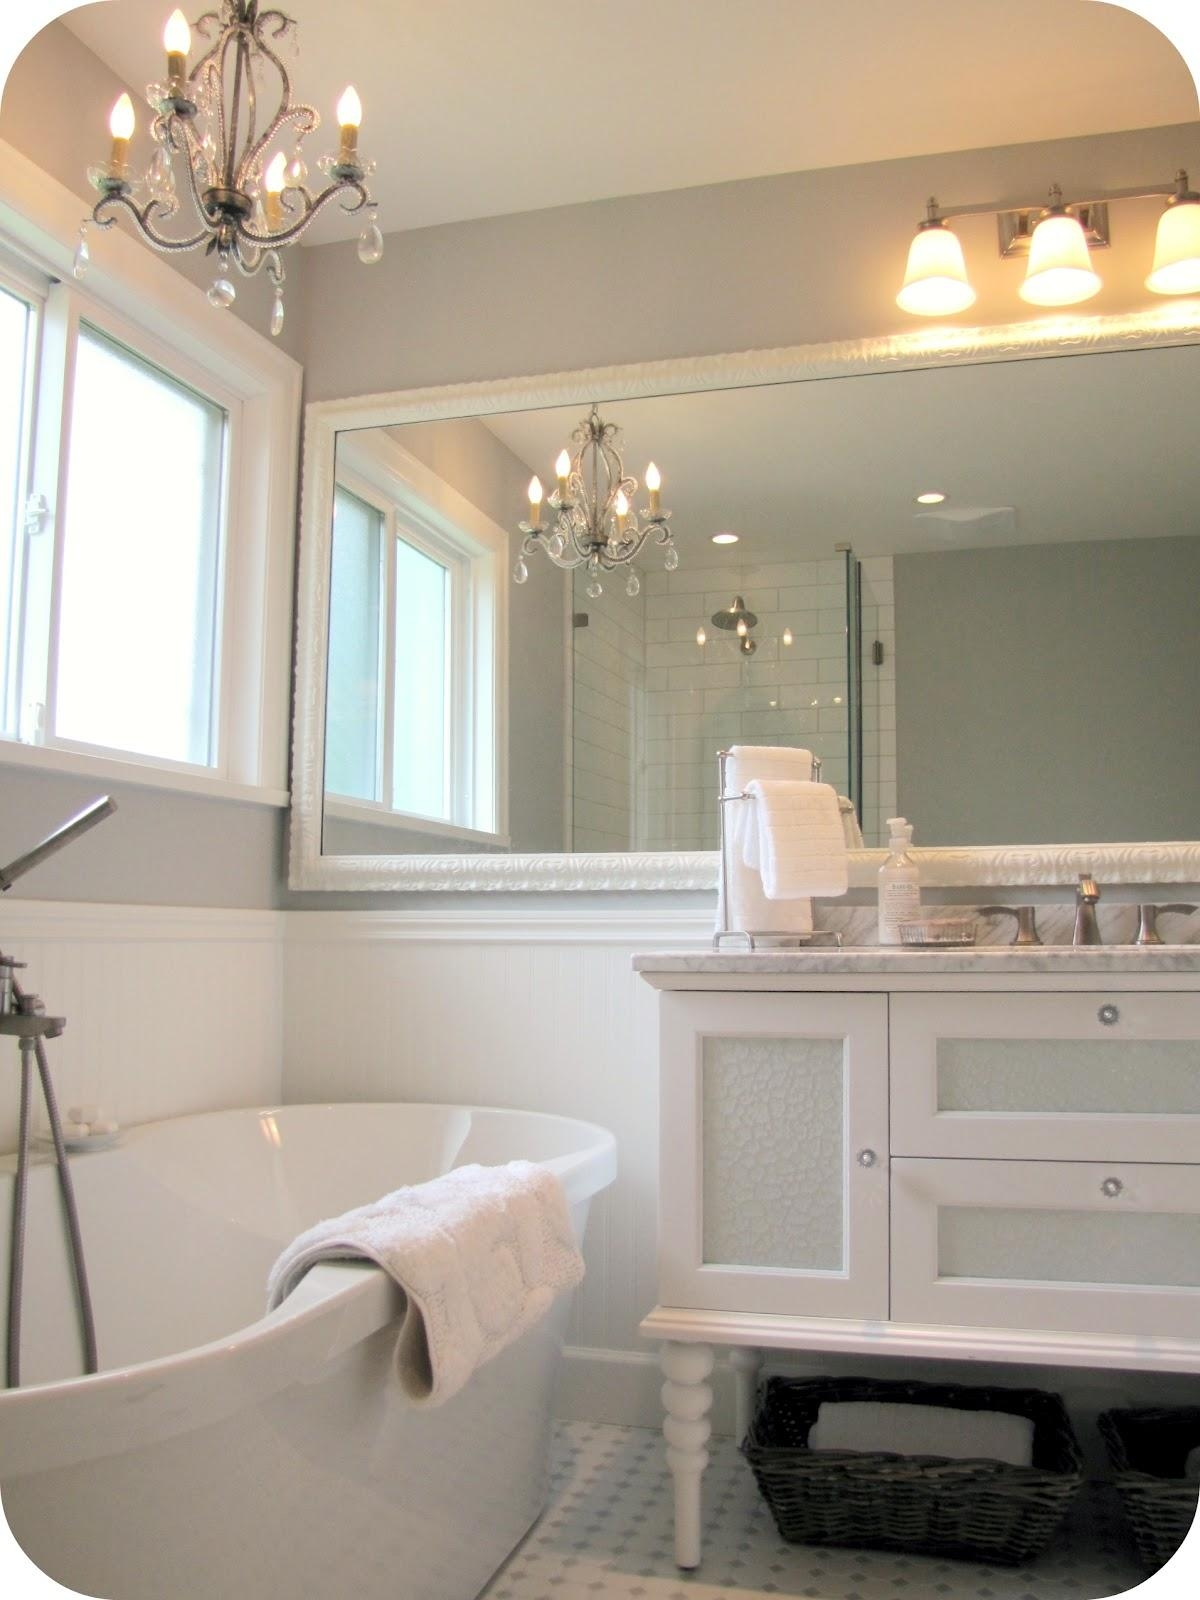 Bathroom Wall Mirrors – Dutchglow For Large Framed Bathroom Wall Mirrors (Image 8 of 20)